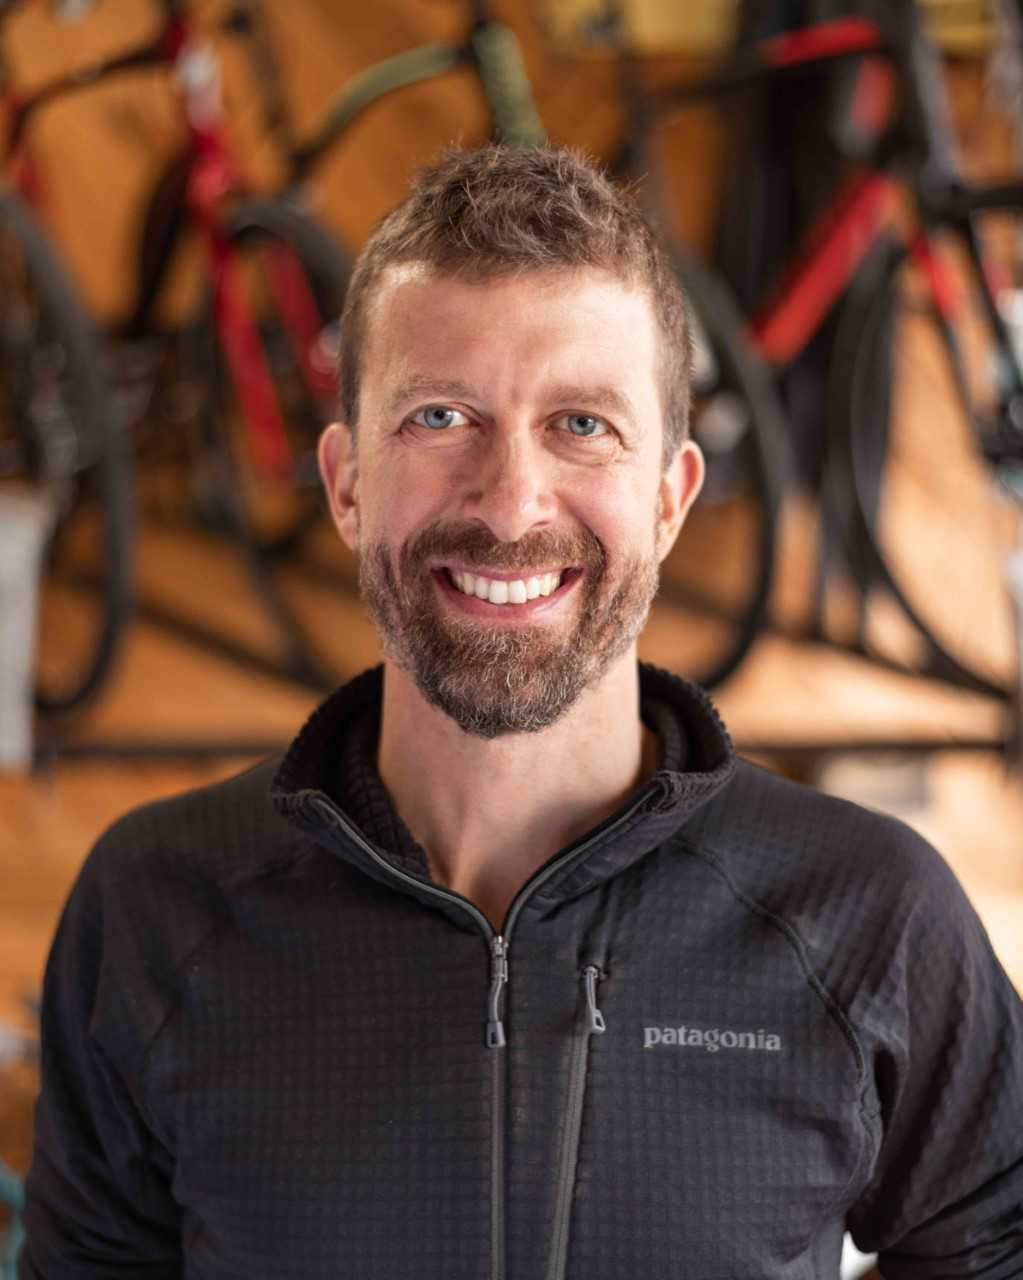 Erik    Hometown:  Rural Valley, PA   Experience:  Has owned the shop since 2005 and has been a competitive cyclist triathlete and runner since 1989.   Favorite Bike:  The Cannondale Slate   What do you do when you are not on the bike?  Loves to run, build things in his workshop, and playing with his dog.